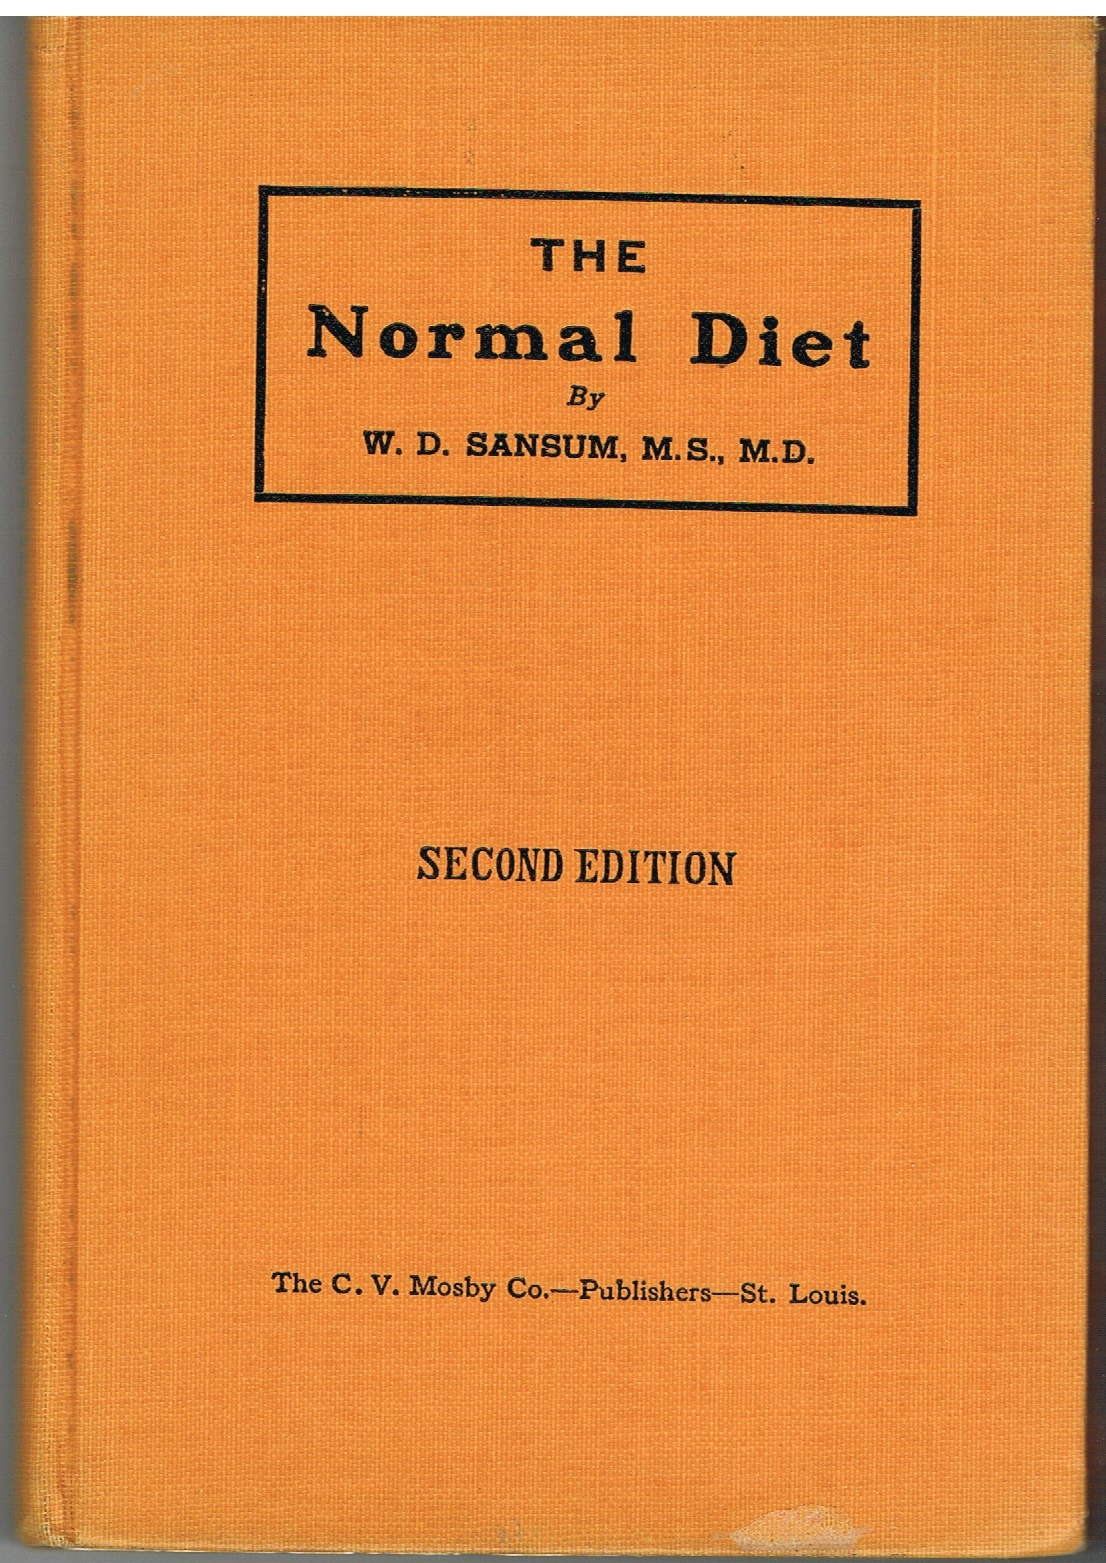 Vintage 1928 Book of The Normal Diet by W. D. Sansum